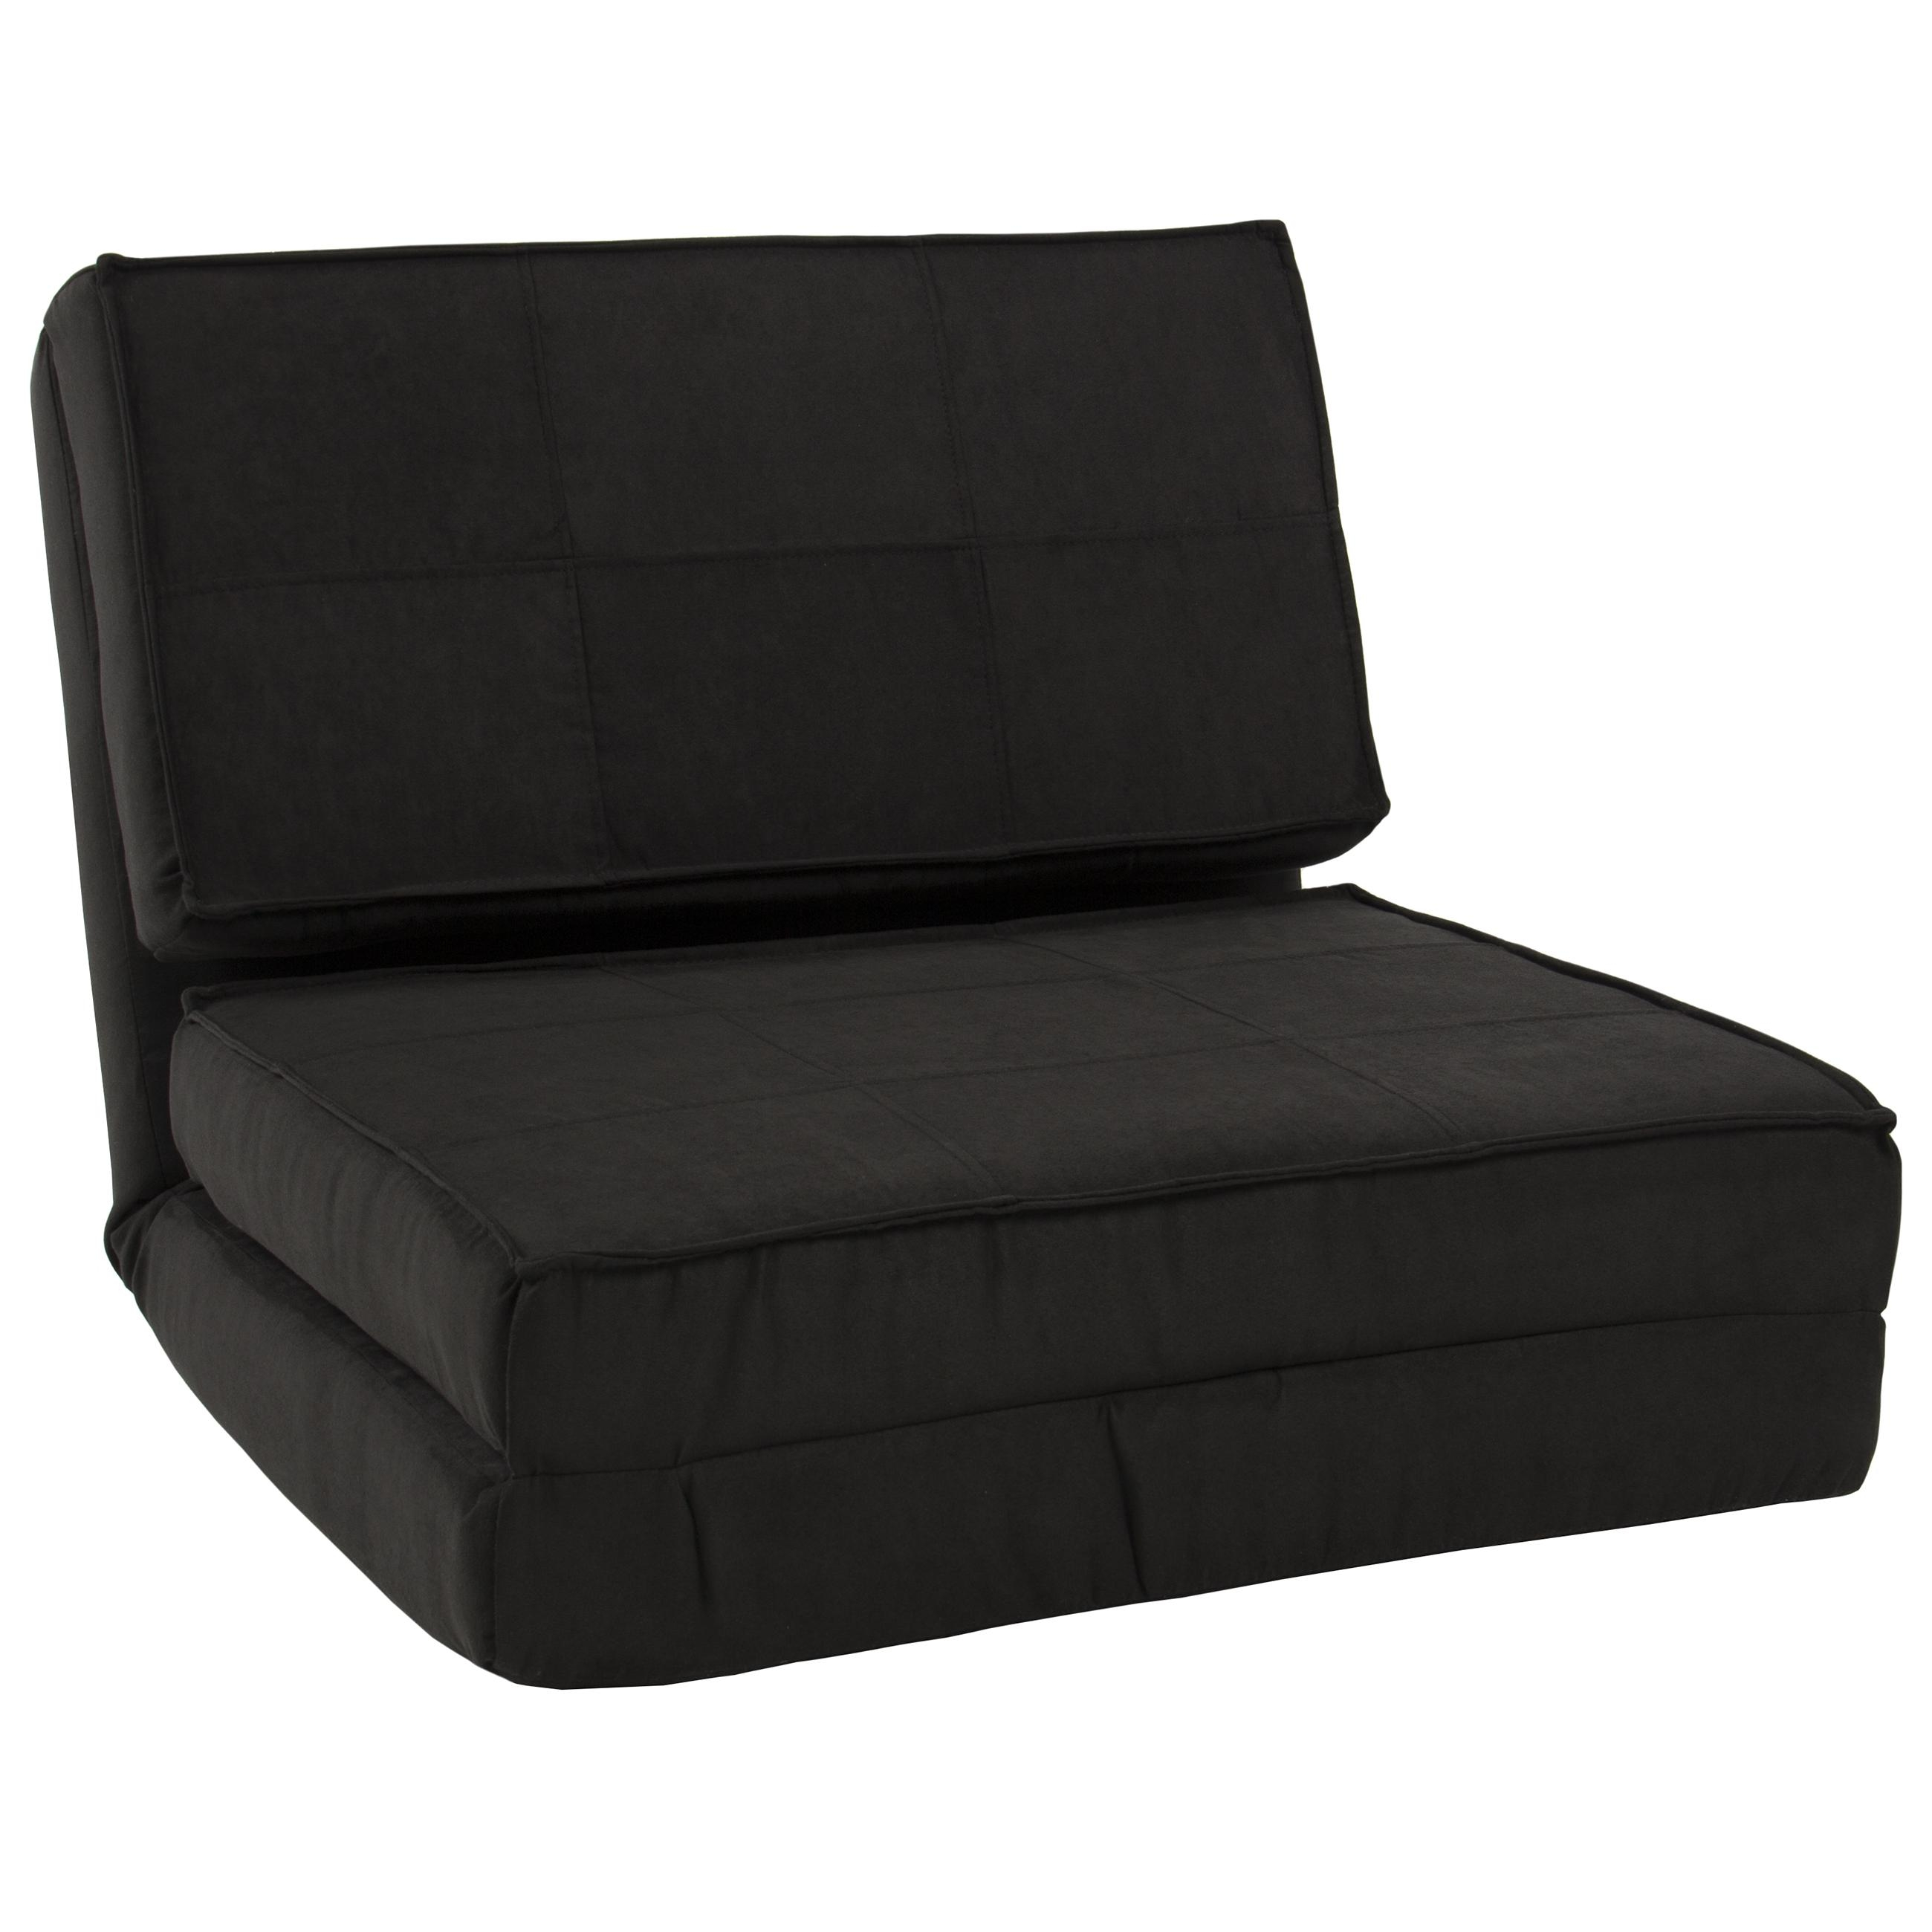 Best Choice Products Convertible Sleeper Chair Bed (Black Intended For Fold Up Sofa Chairs (View 3 of 22)